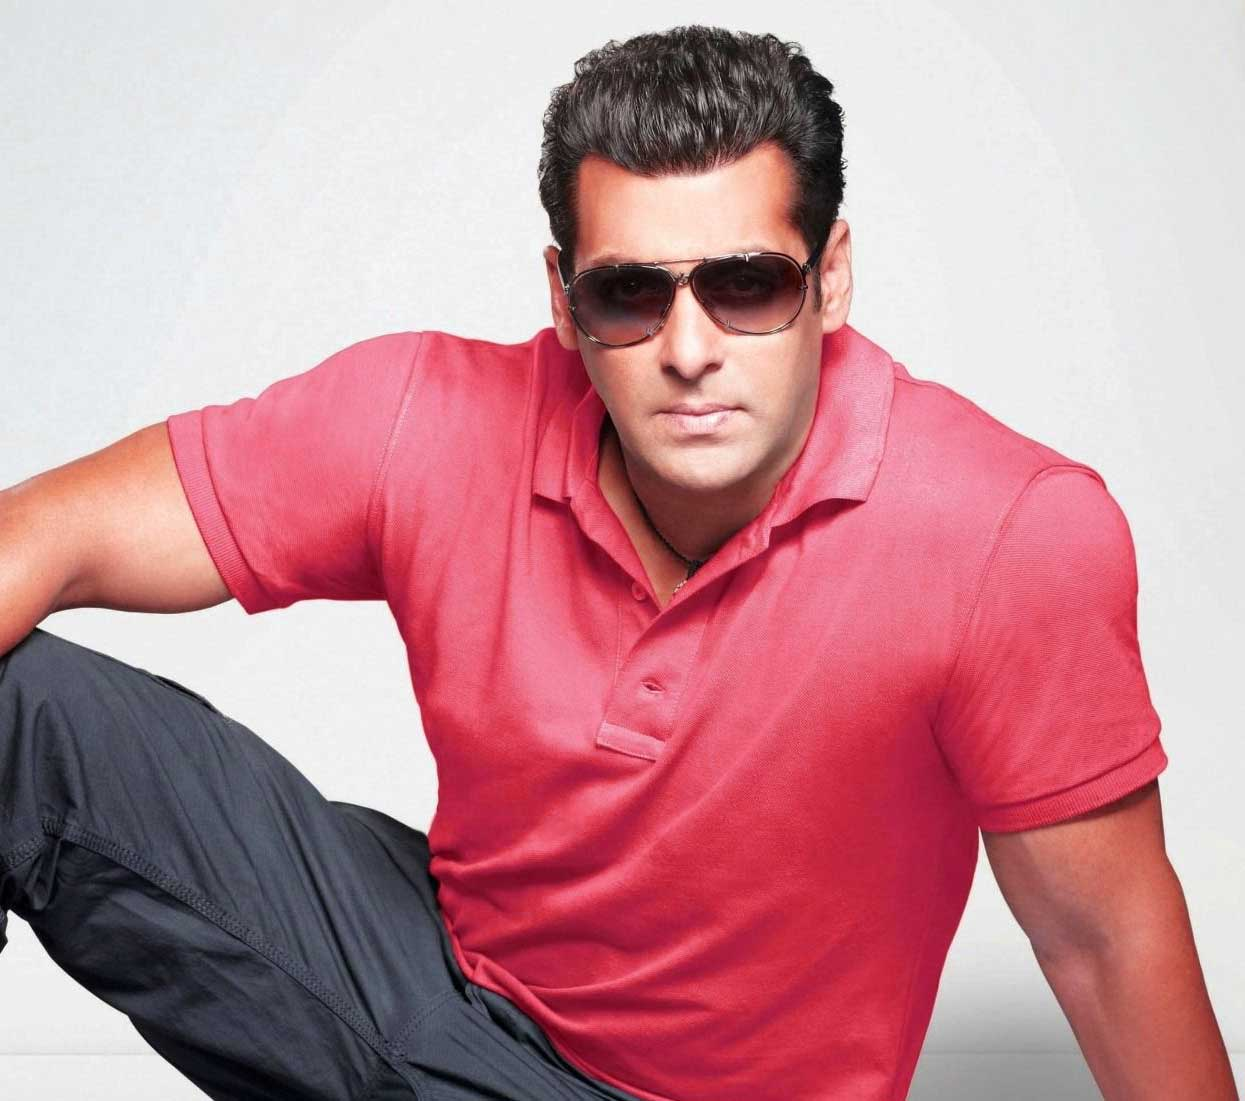 Salman Khan Images HD Free 31